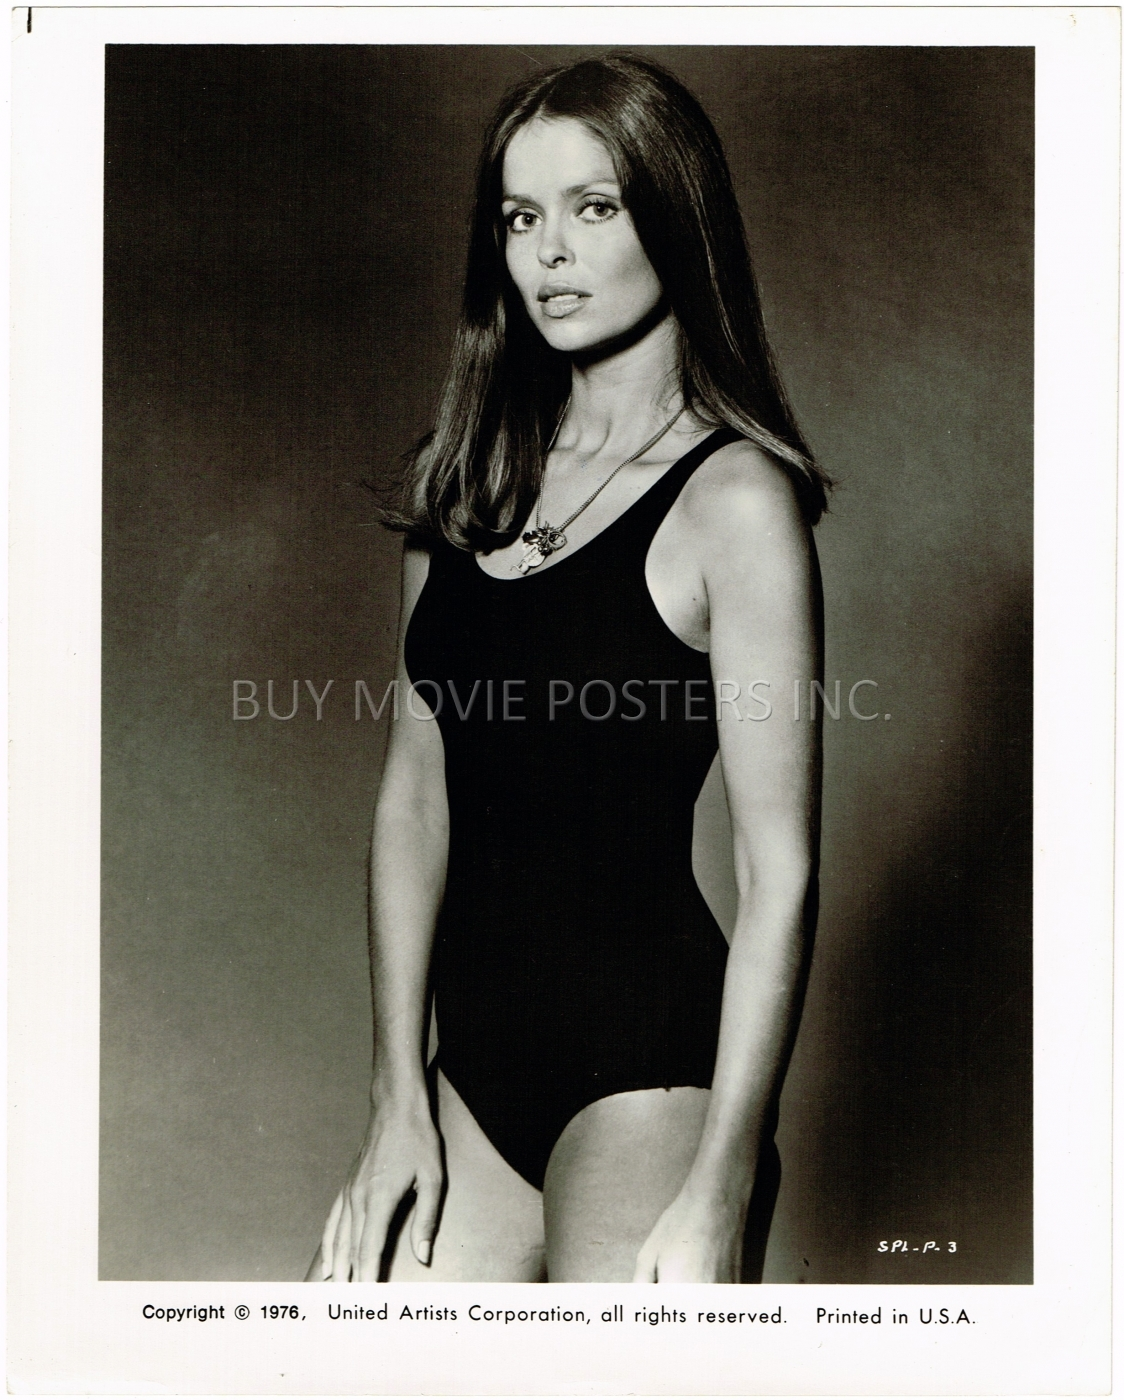 barbara bach bondbarbara bach interview, barbara bach photo, barbara bach and ringo starr, barbara bach height, barbara bach 2016, barbara bach instagram, barbara bach, barbara bach 2015, barbara bach 2014, barbara bach bond, barbara bach and ringo starr wedding, barbara bach actress, nadja summer & barbara bach, barbara bach today, barbara bach age, barbara bach net worth